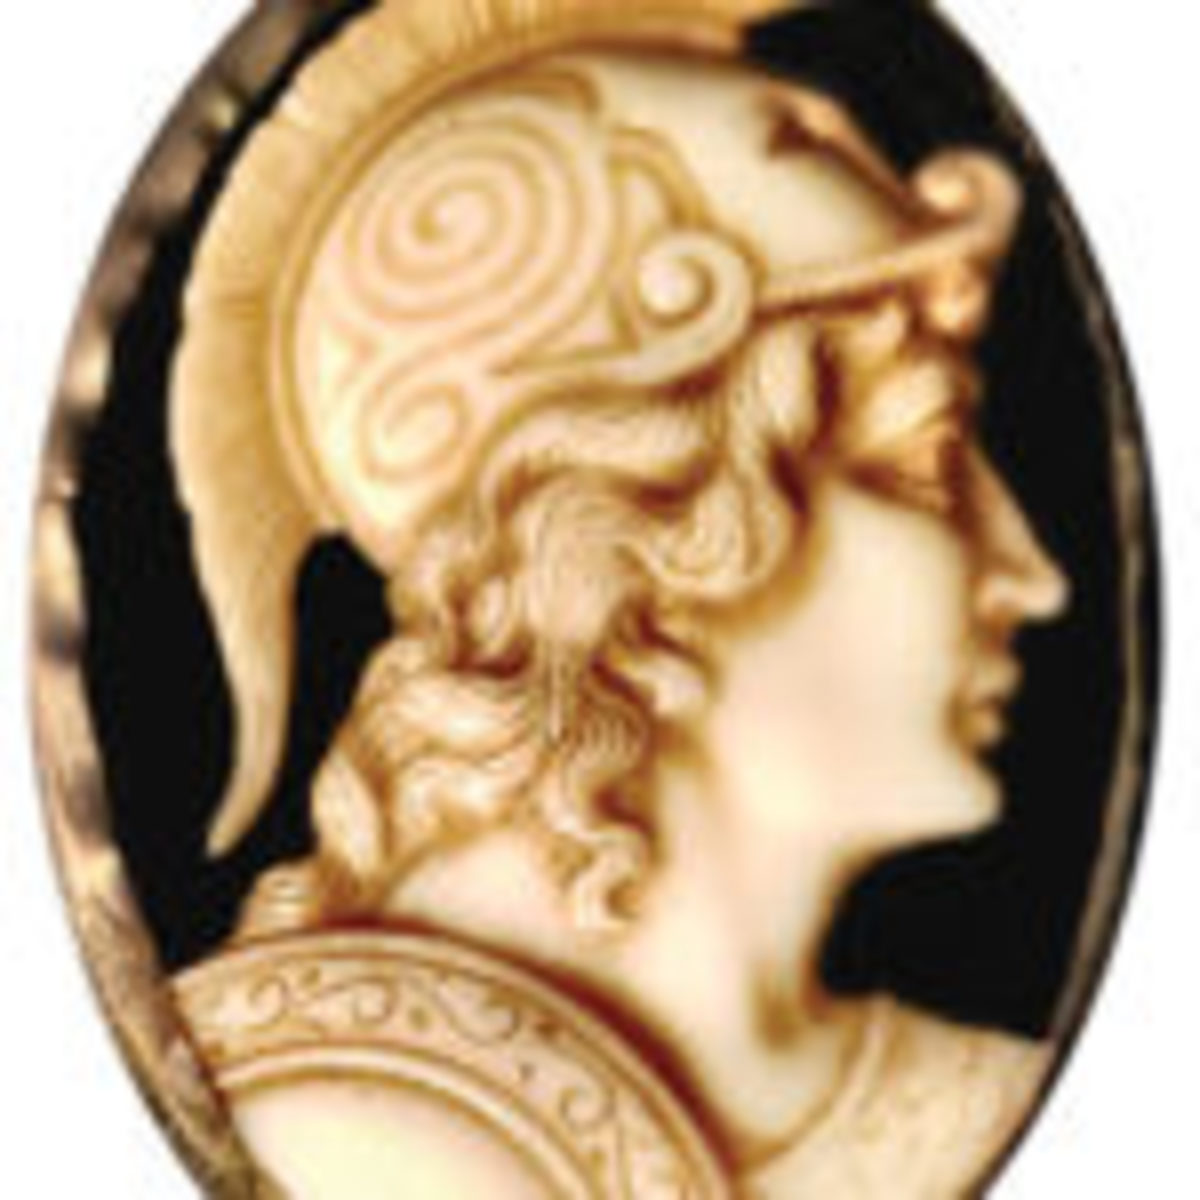 This late 18th or early 19th century glass cameo depicts the head of a Roman soldier, which was an early favorite theme in cameos. The cameo is made of two layers of contrasting glass with a yellowish-brown profile on a black background. Photos courtesy of Dr. Anthony Cavo